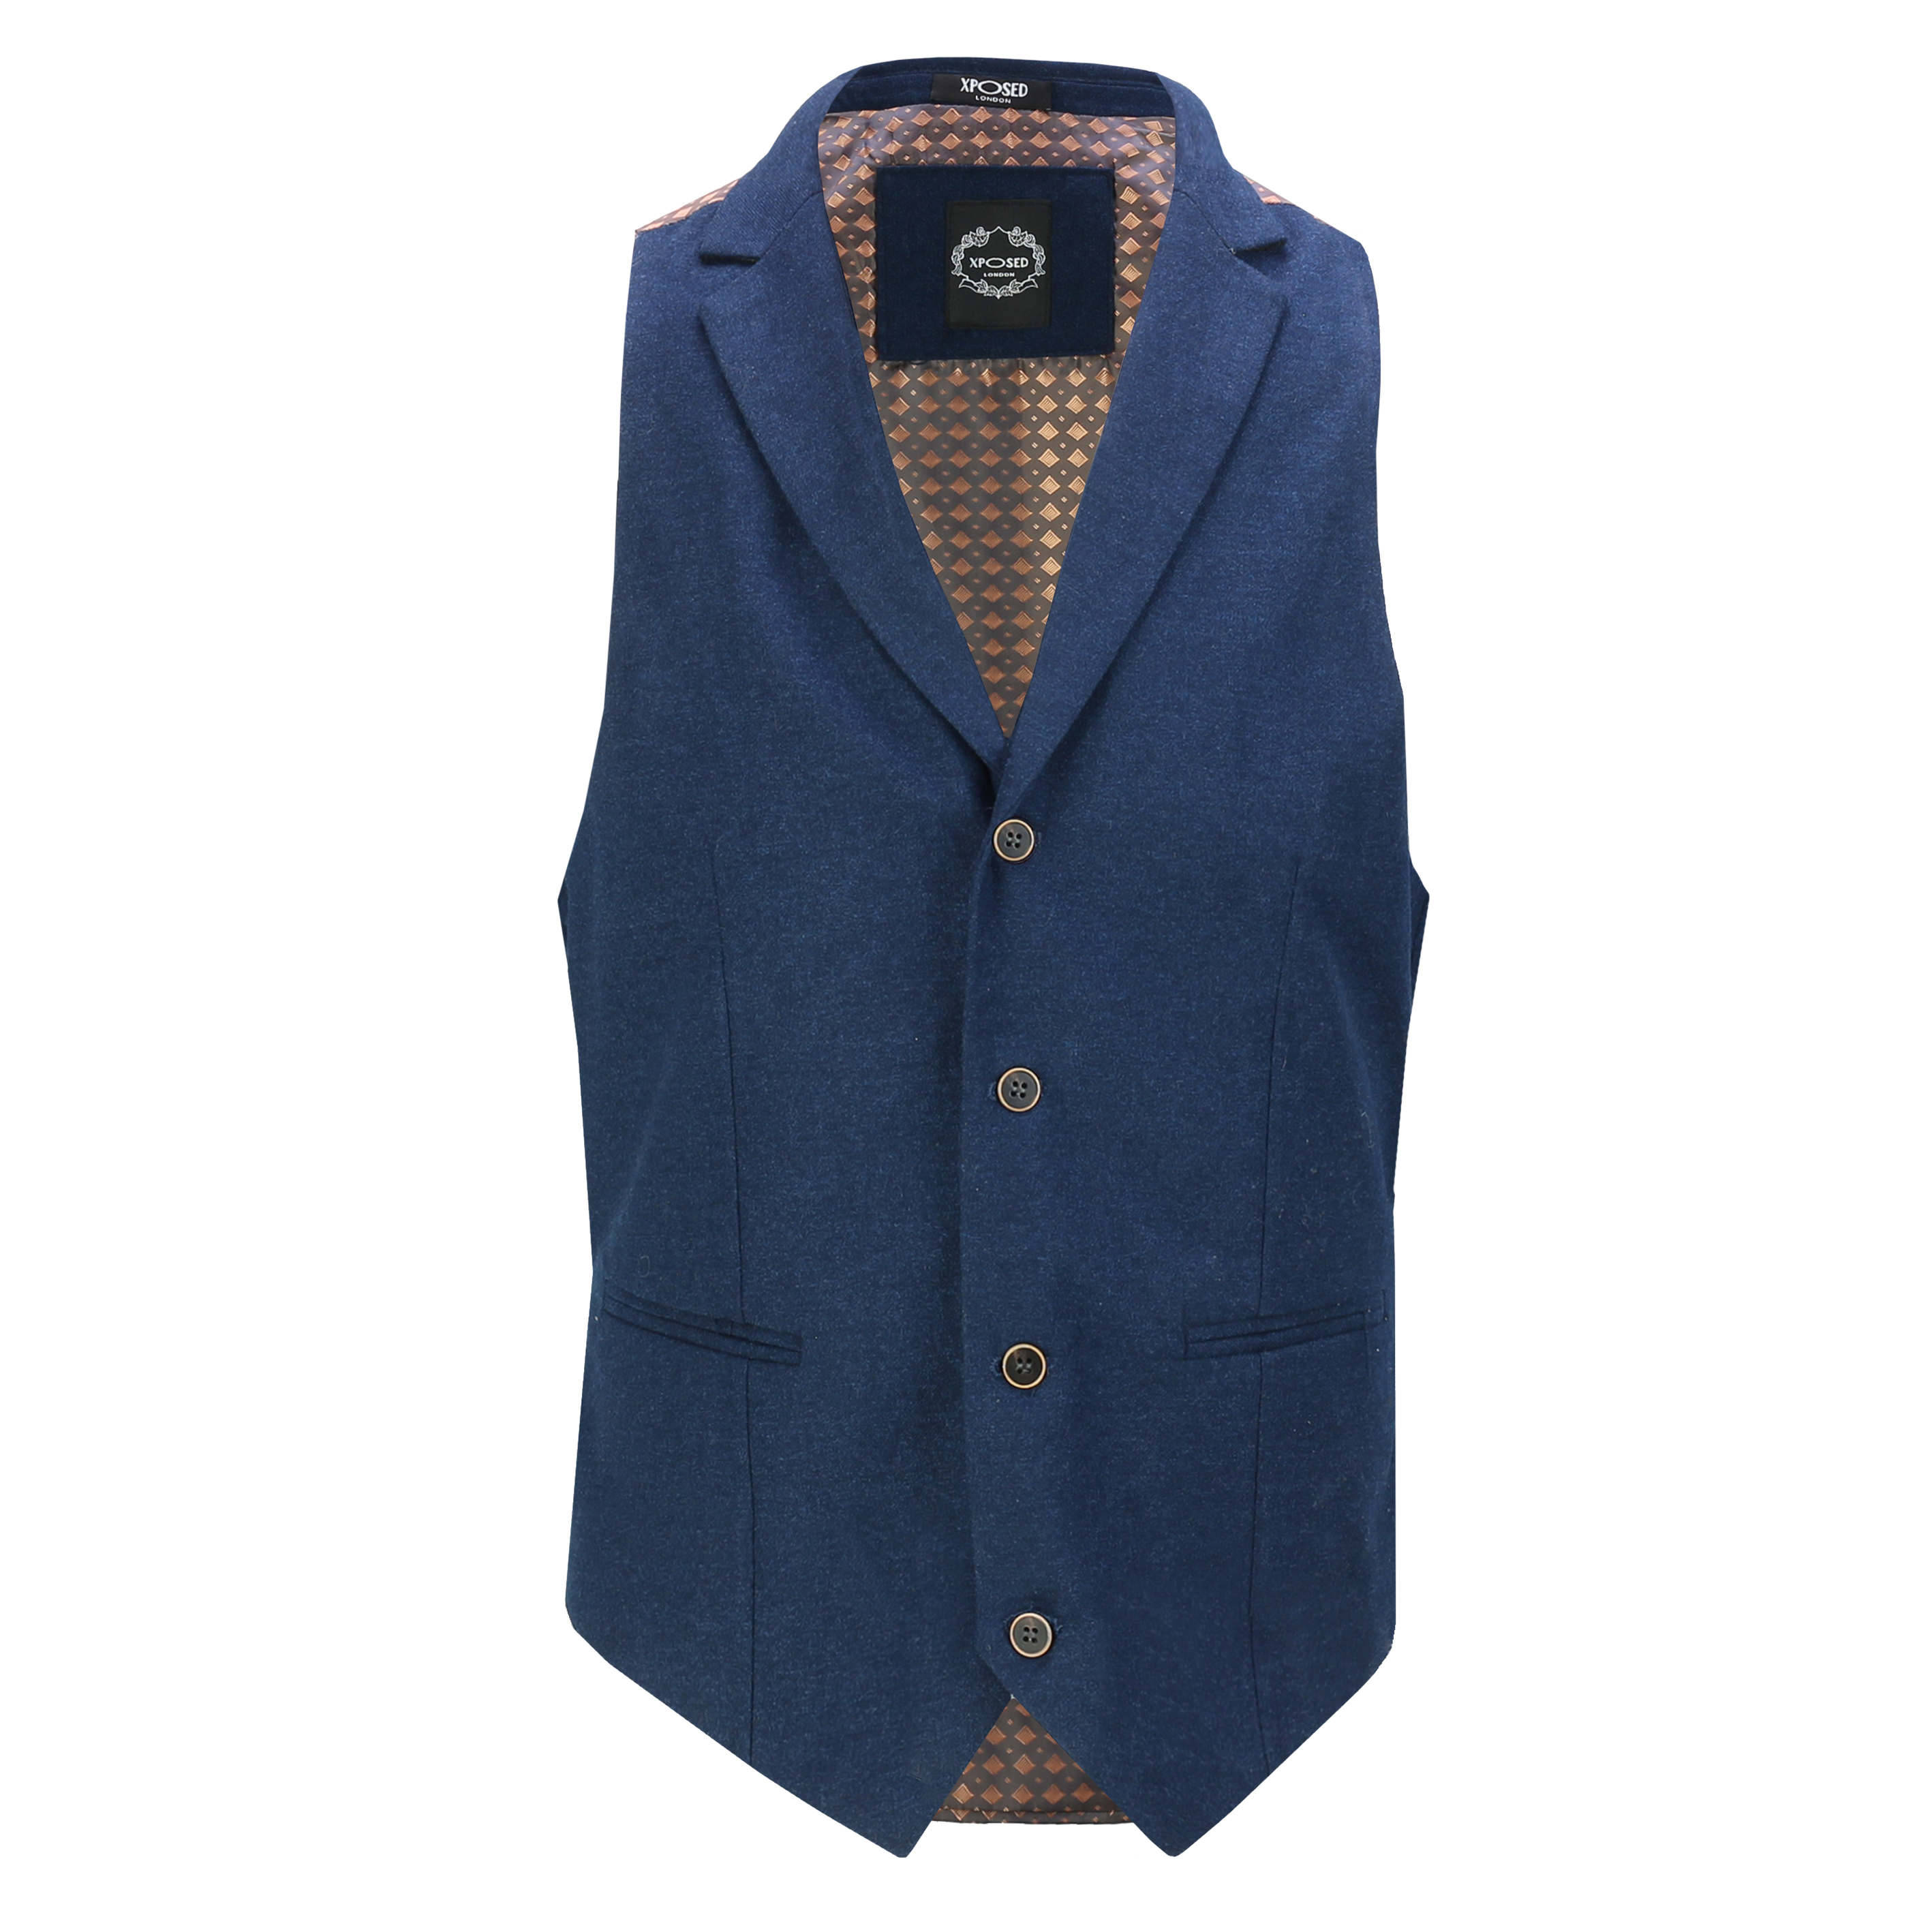 Mens-Classic-Collar-Waistcoat-Retro-Vintage-Style-Tailored-Fit-Smart-Formal-Vest thumbnail 18